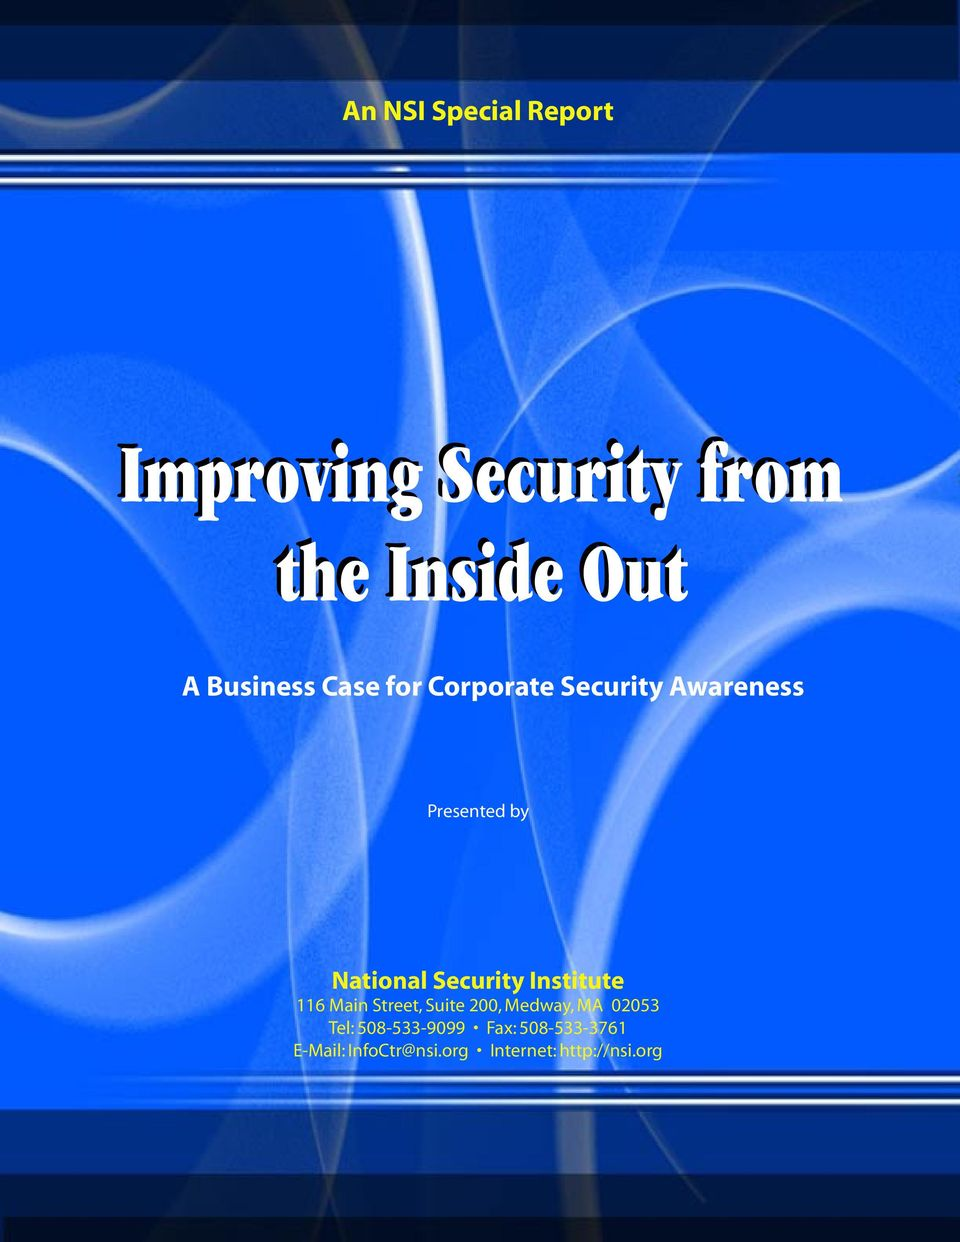 Security Institute 116 Main Street, Suite 200, Medway, MA 02053 Tel: